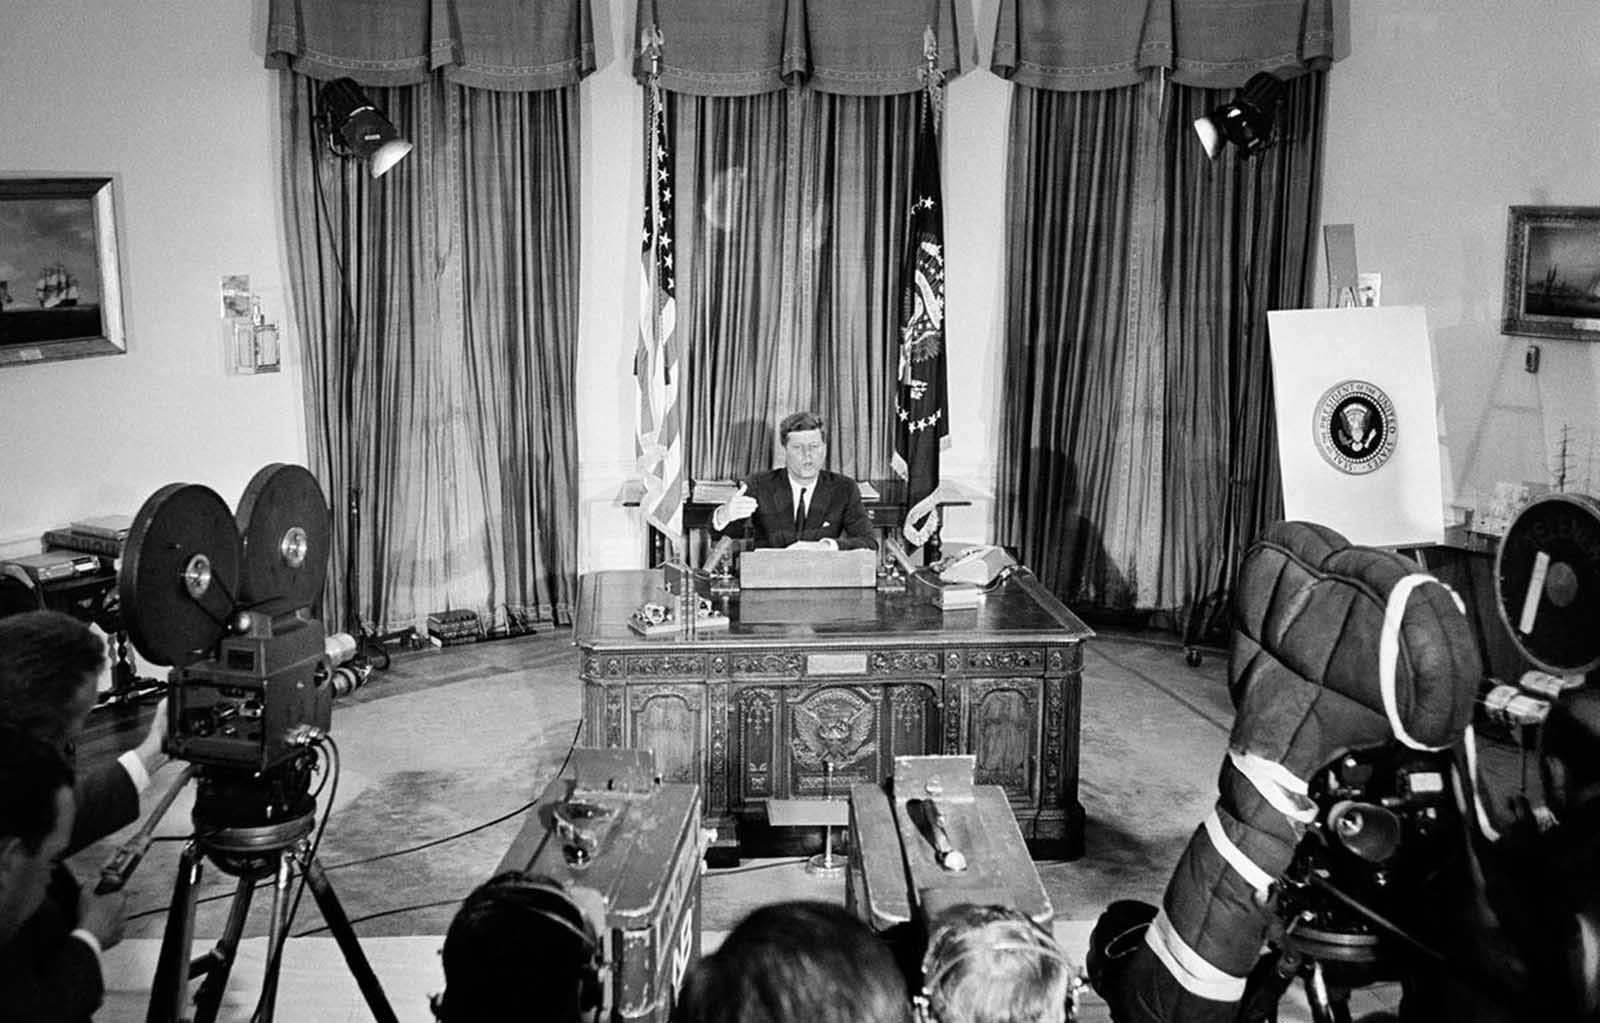 President Kennedy sits at his White House office desk, on June 6, 1961 as he reports to the nation by television and radio networks, on his talks with Soviet Premier Nikita Khrushchev in Vienna and President Charles de Gaulle of France in Paris.